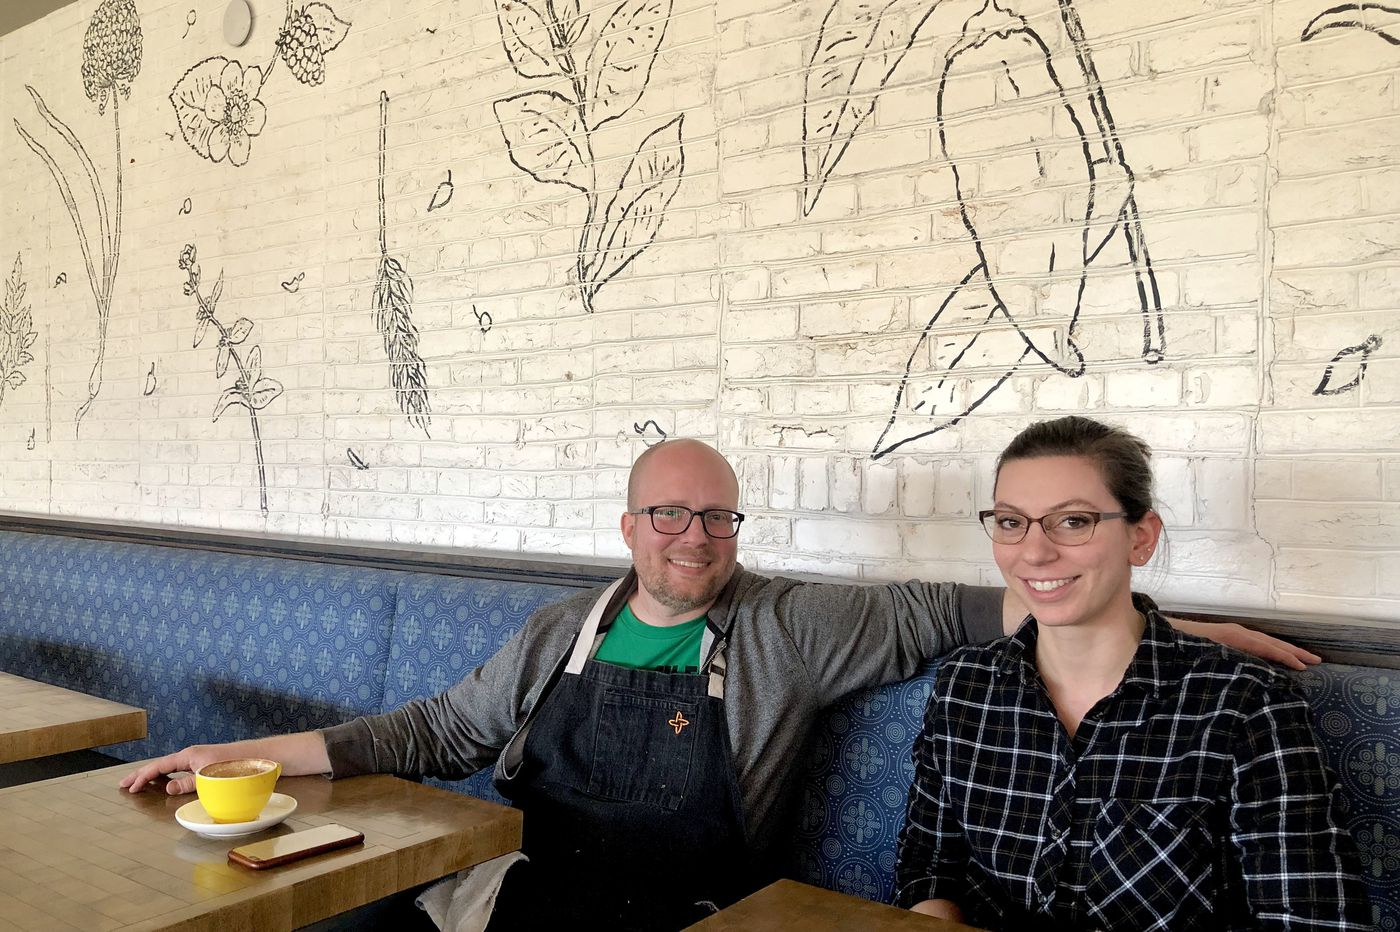 Fiore, an Italian-inspired cafe-restaurant, soft-opens in Queen Village